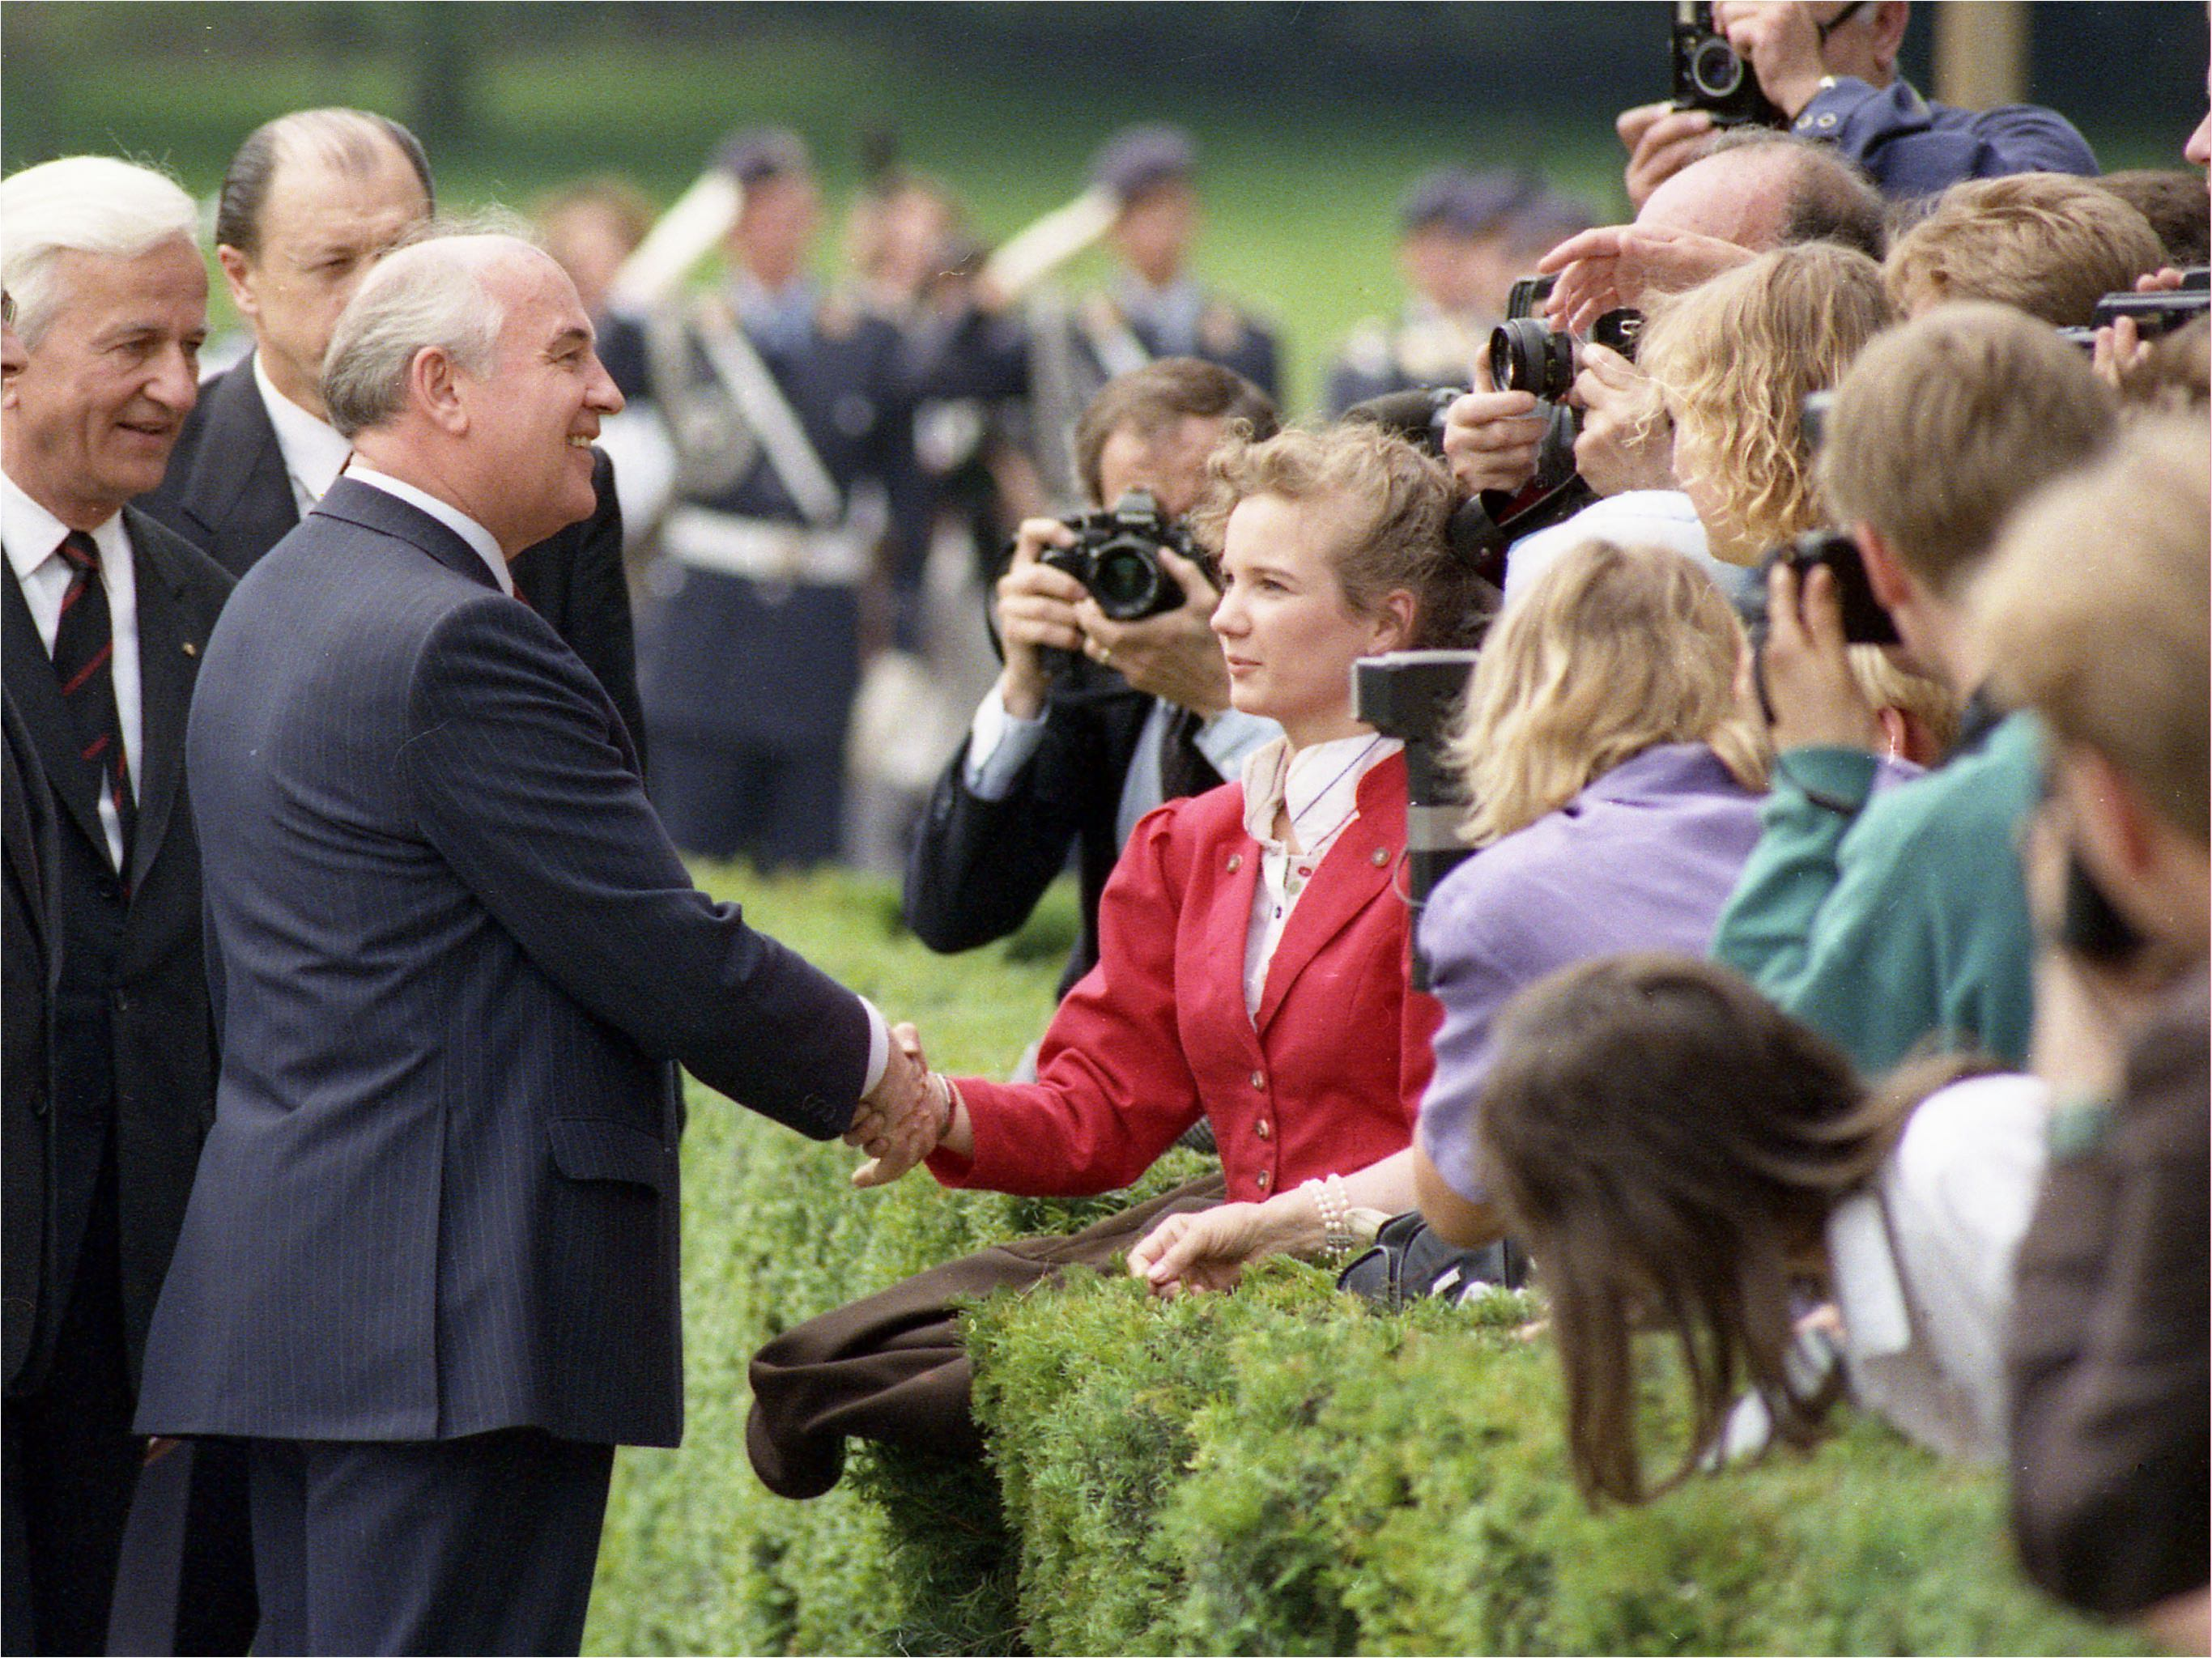 Mikhail Gorbachev visits Bonn, West Germany